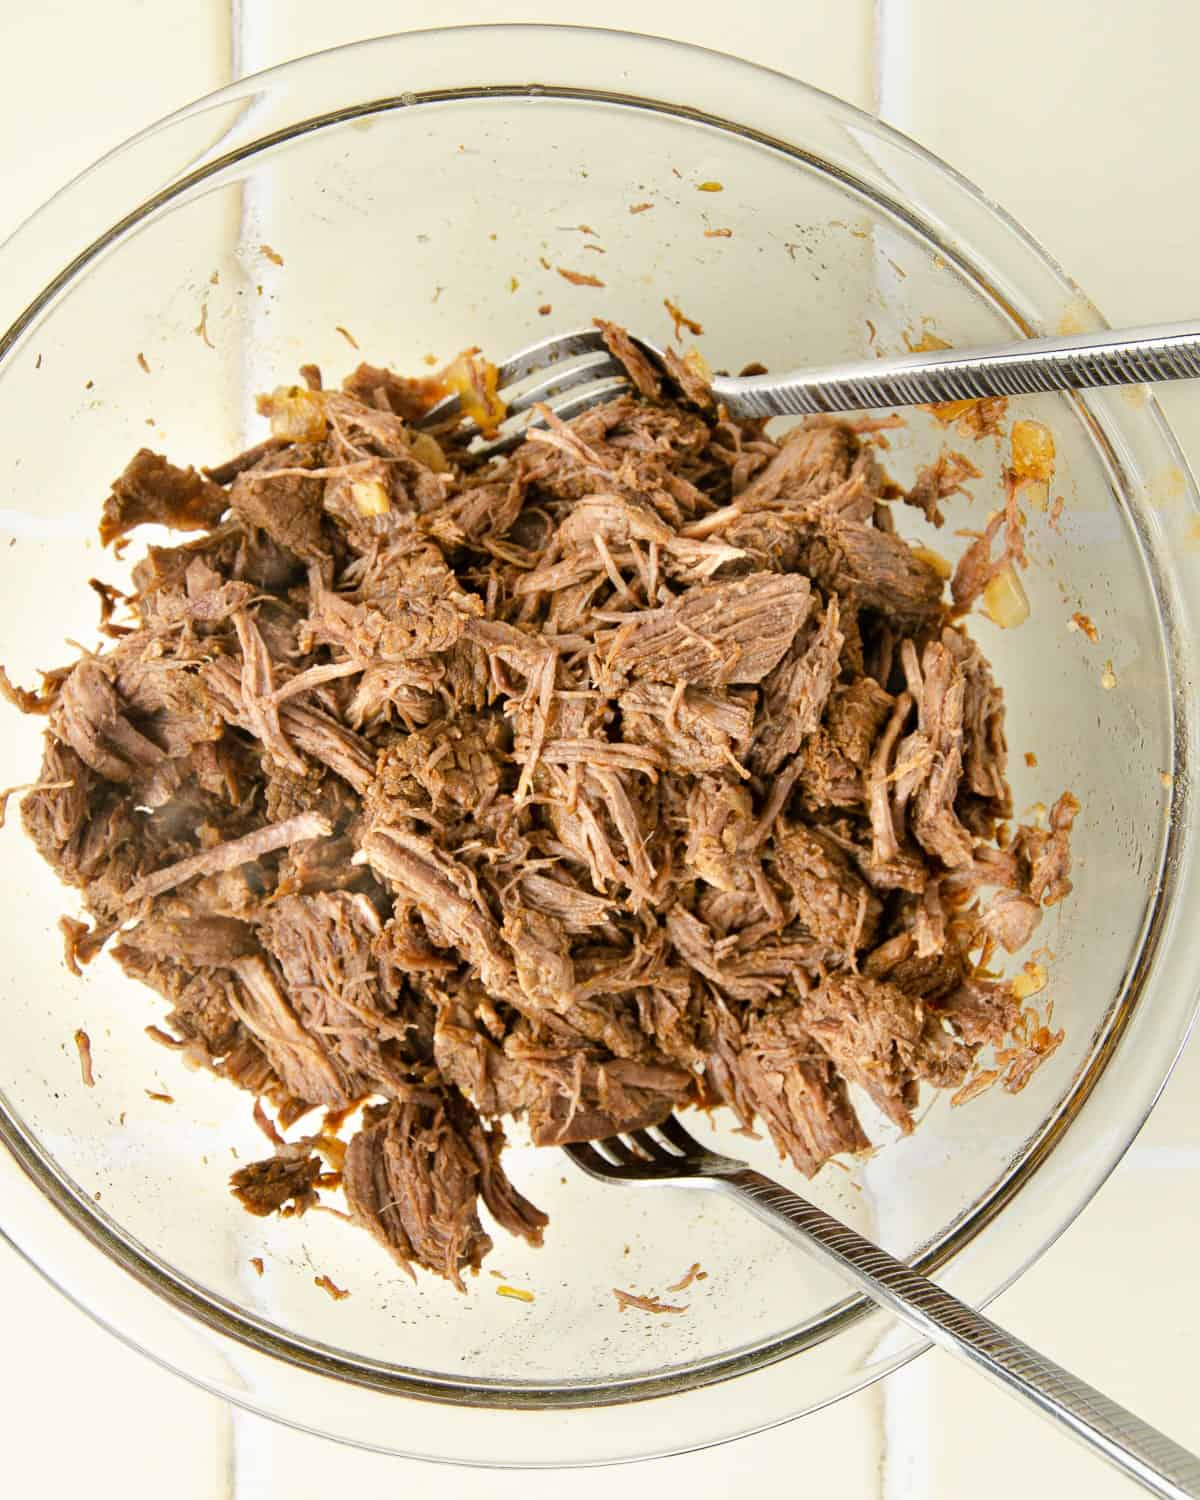 shredding chuck roast after simmering in the barbacoa seasoning and sauce. Use two forks to shred.